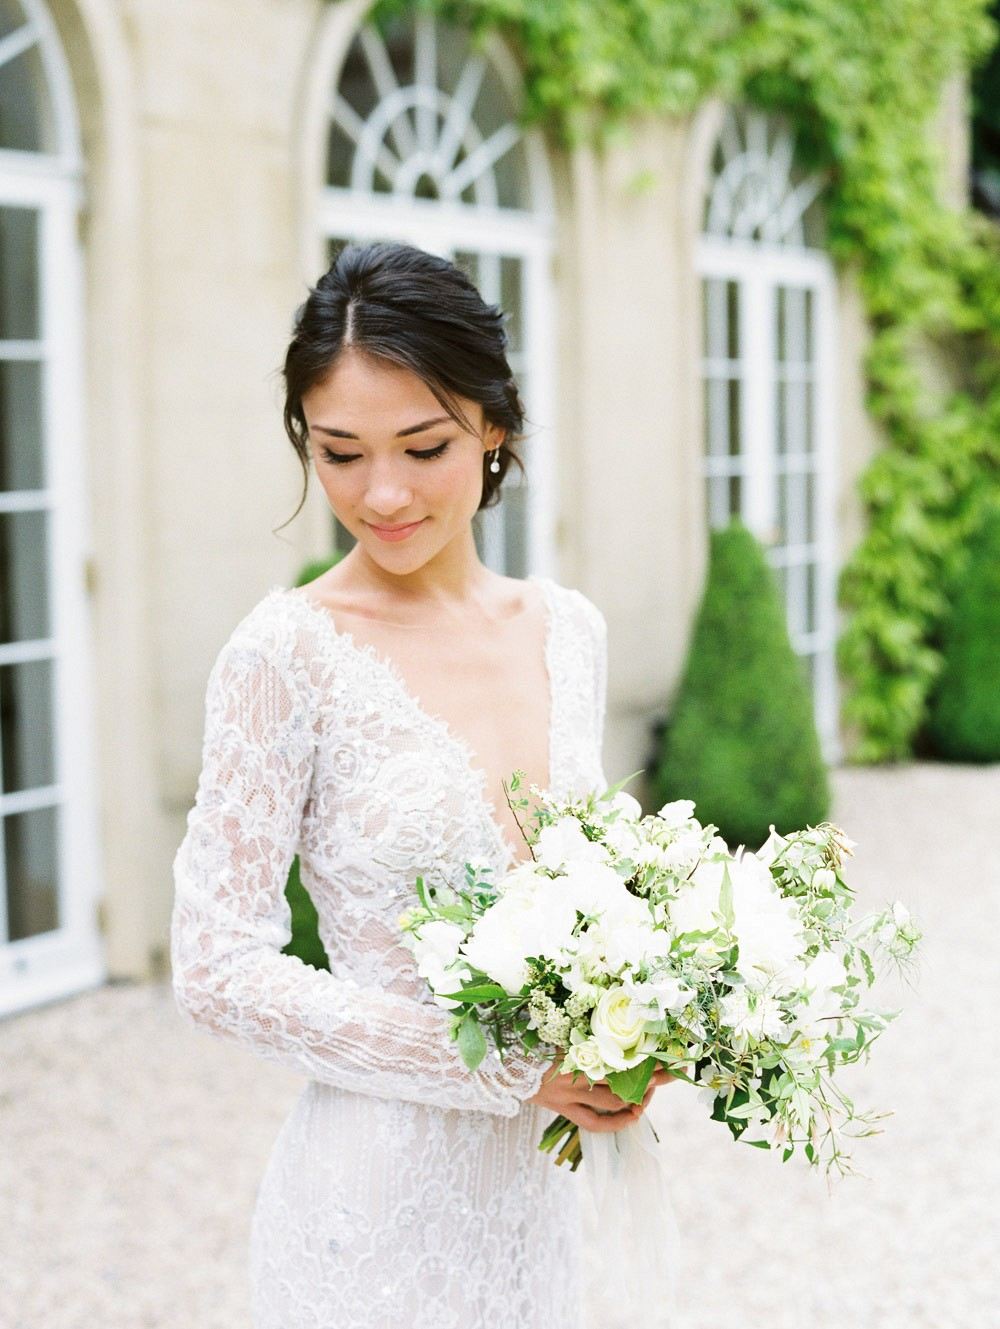 A relaxed, yet elegant English garden wedding